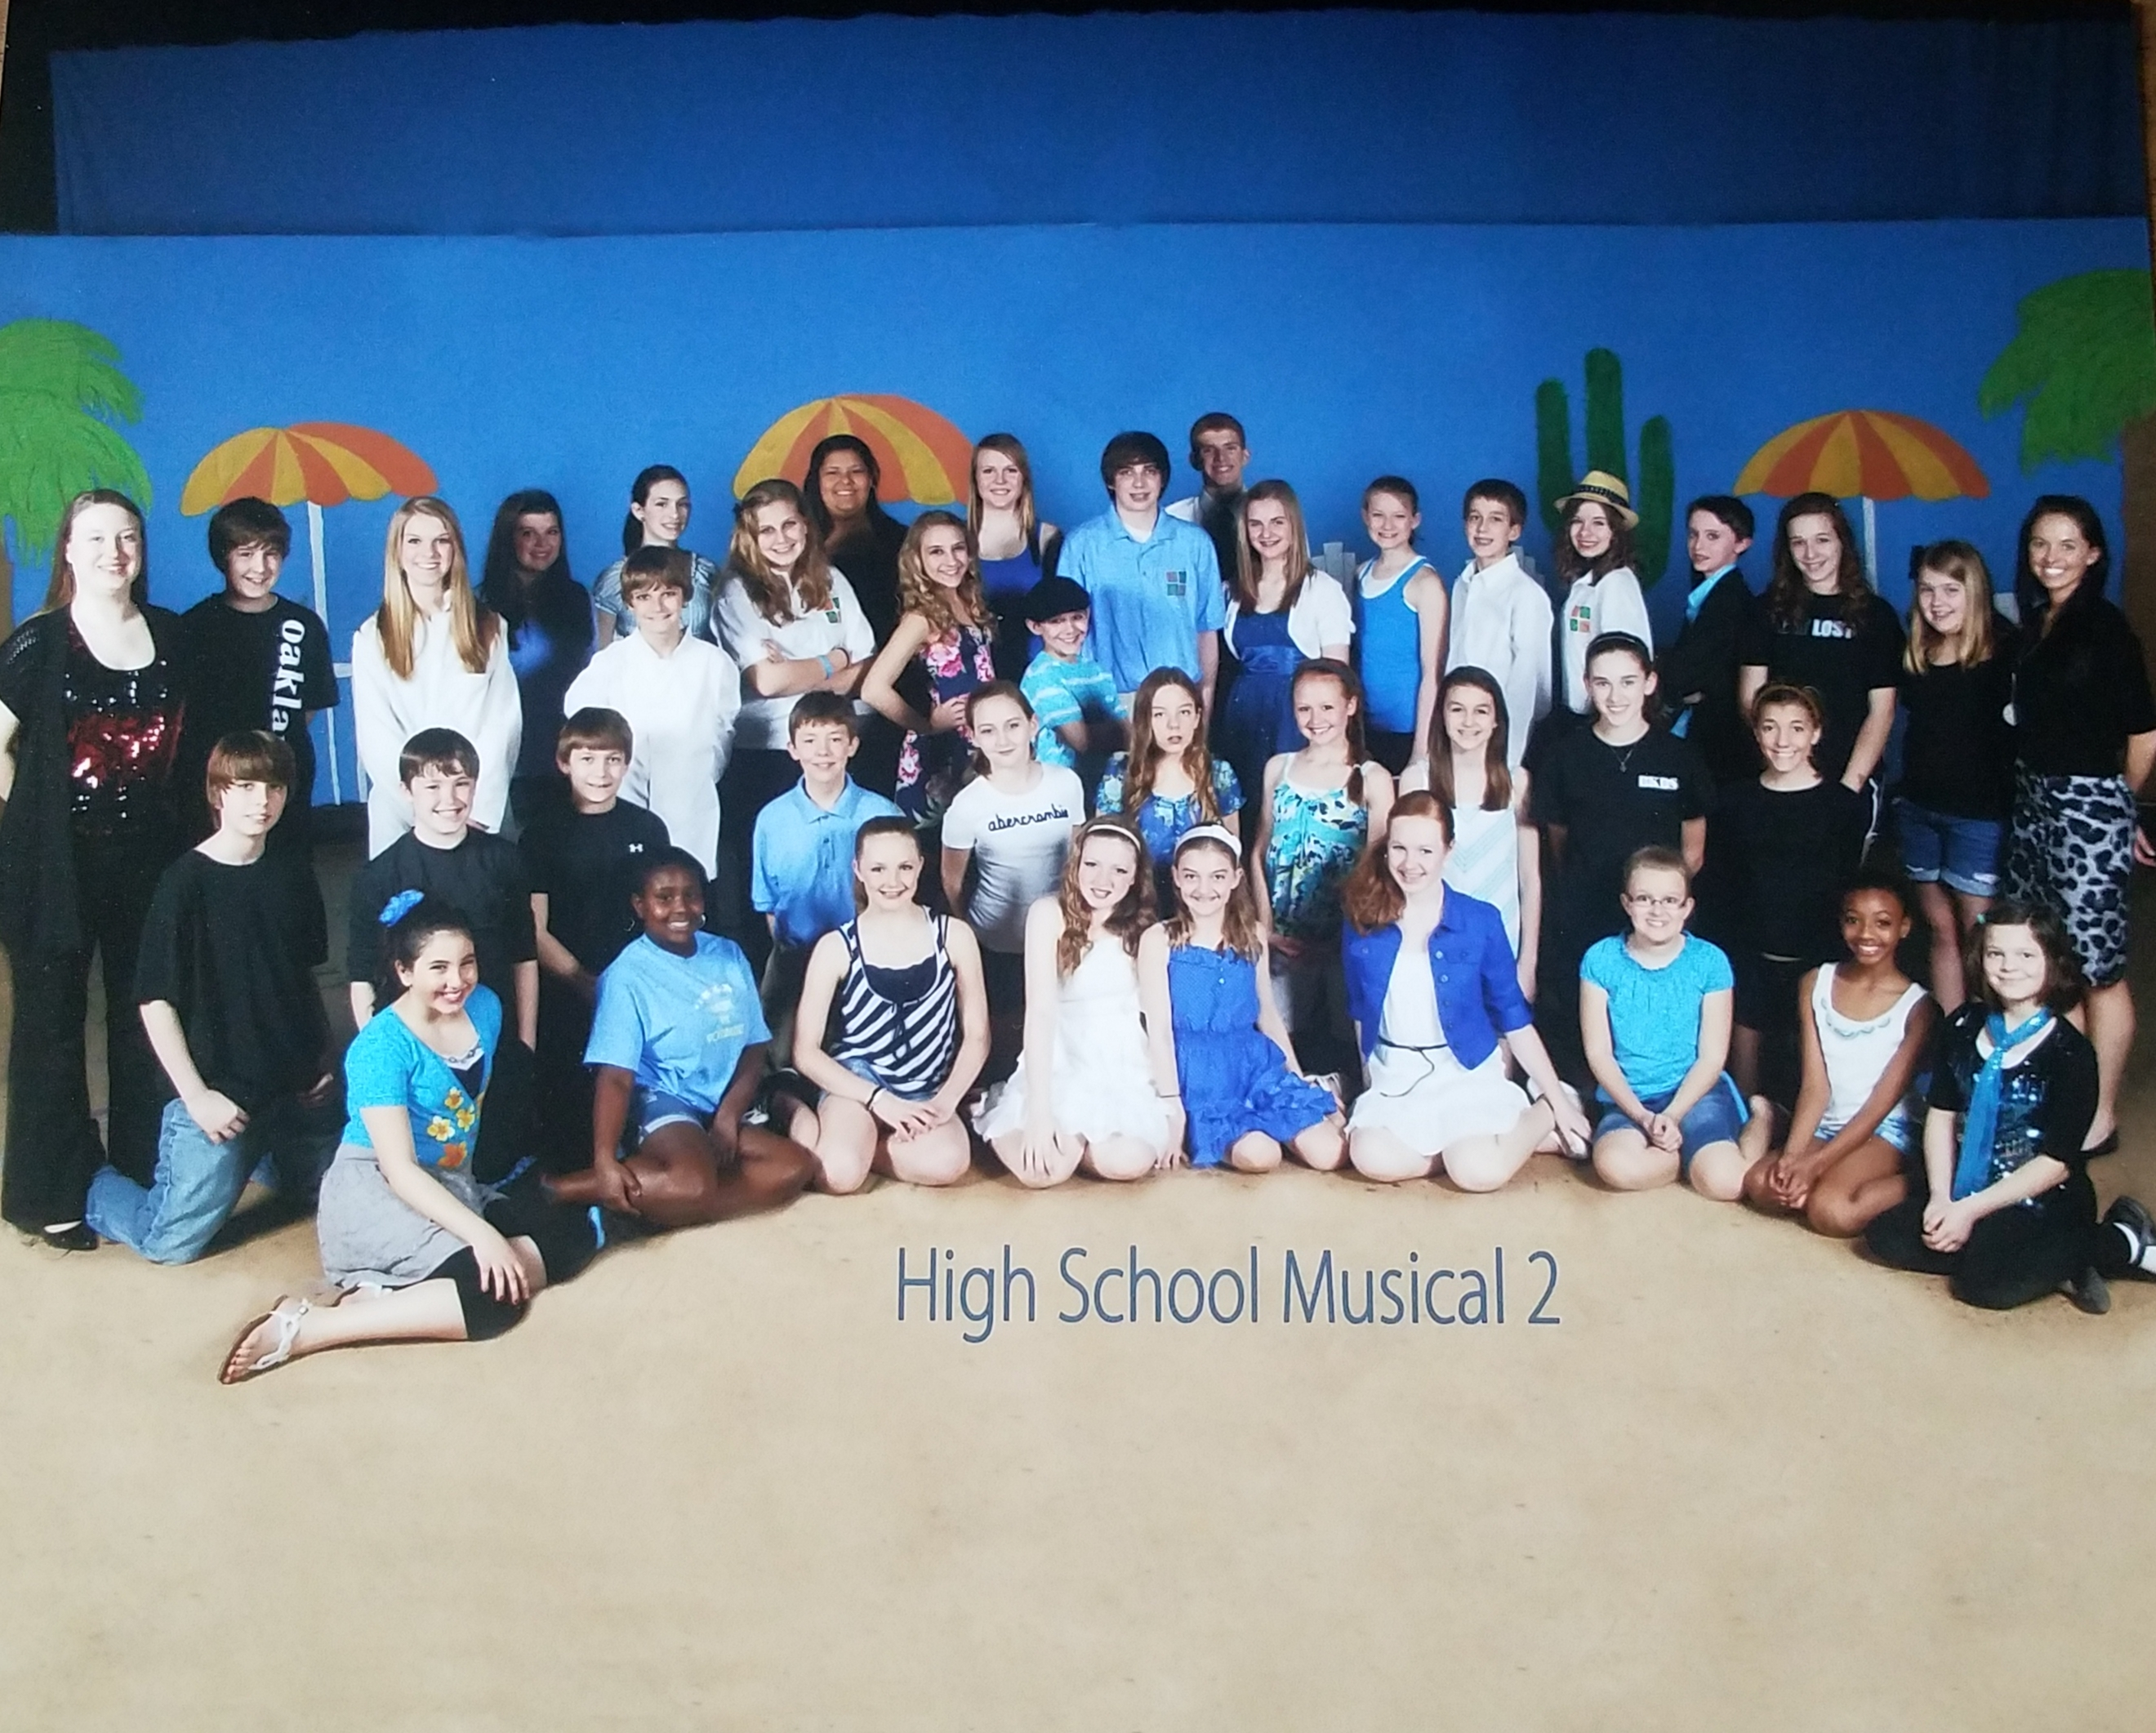 Cast and Crew of Disney's High School Musical 2